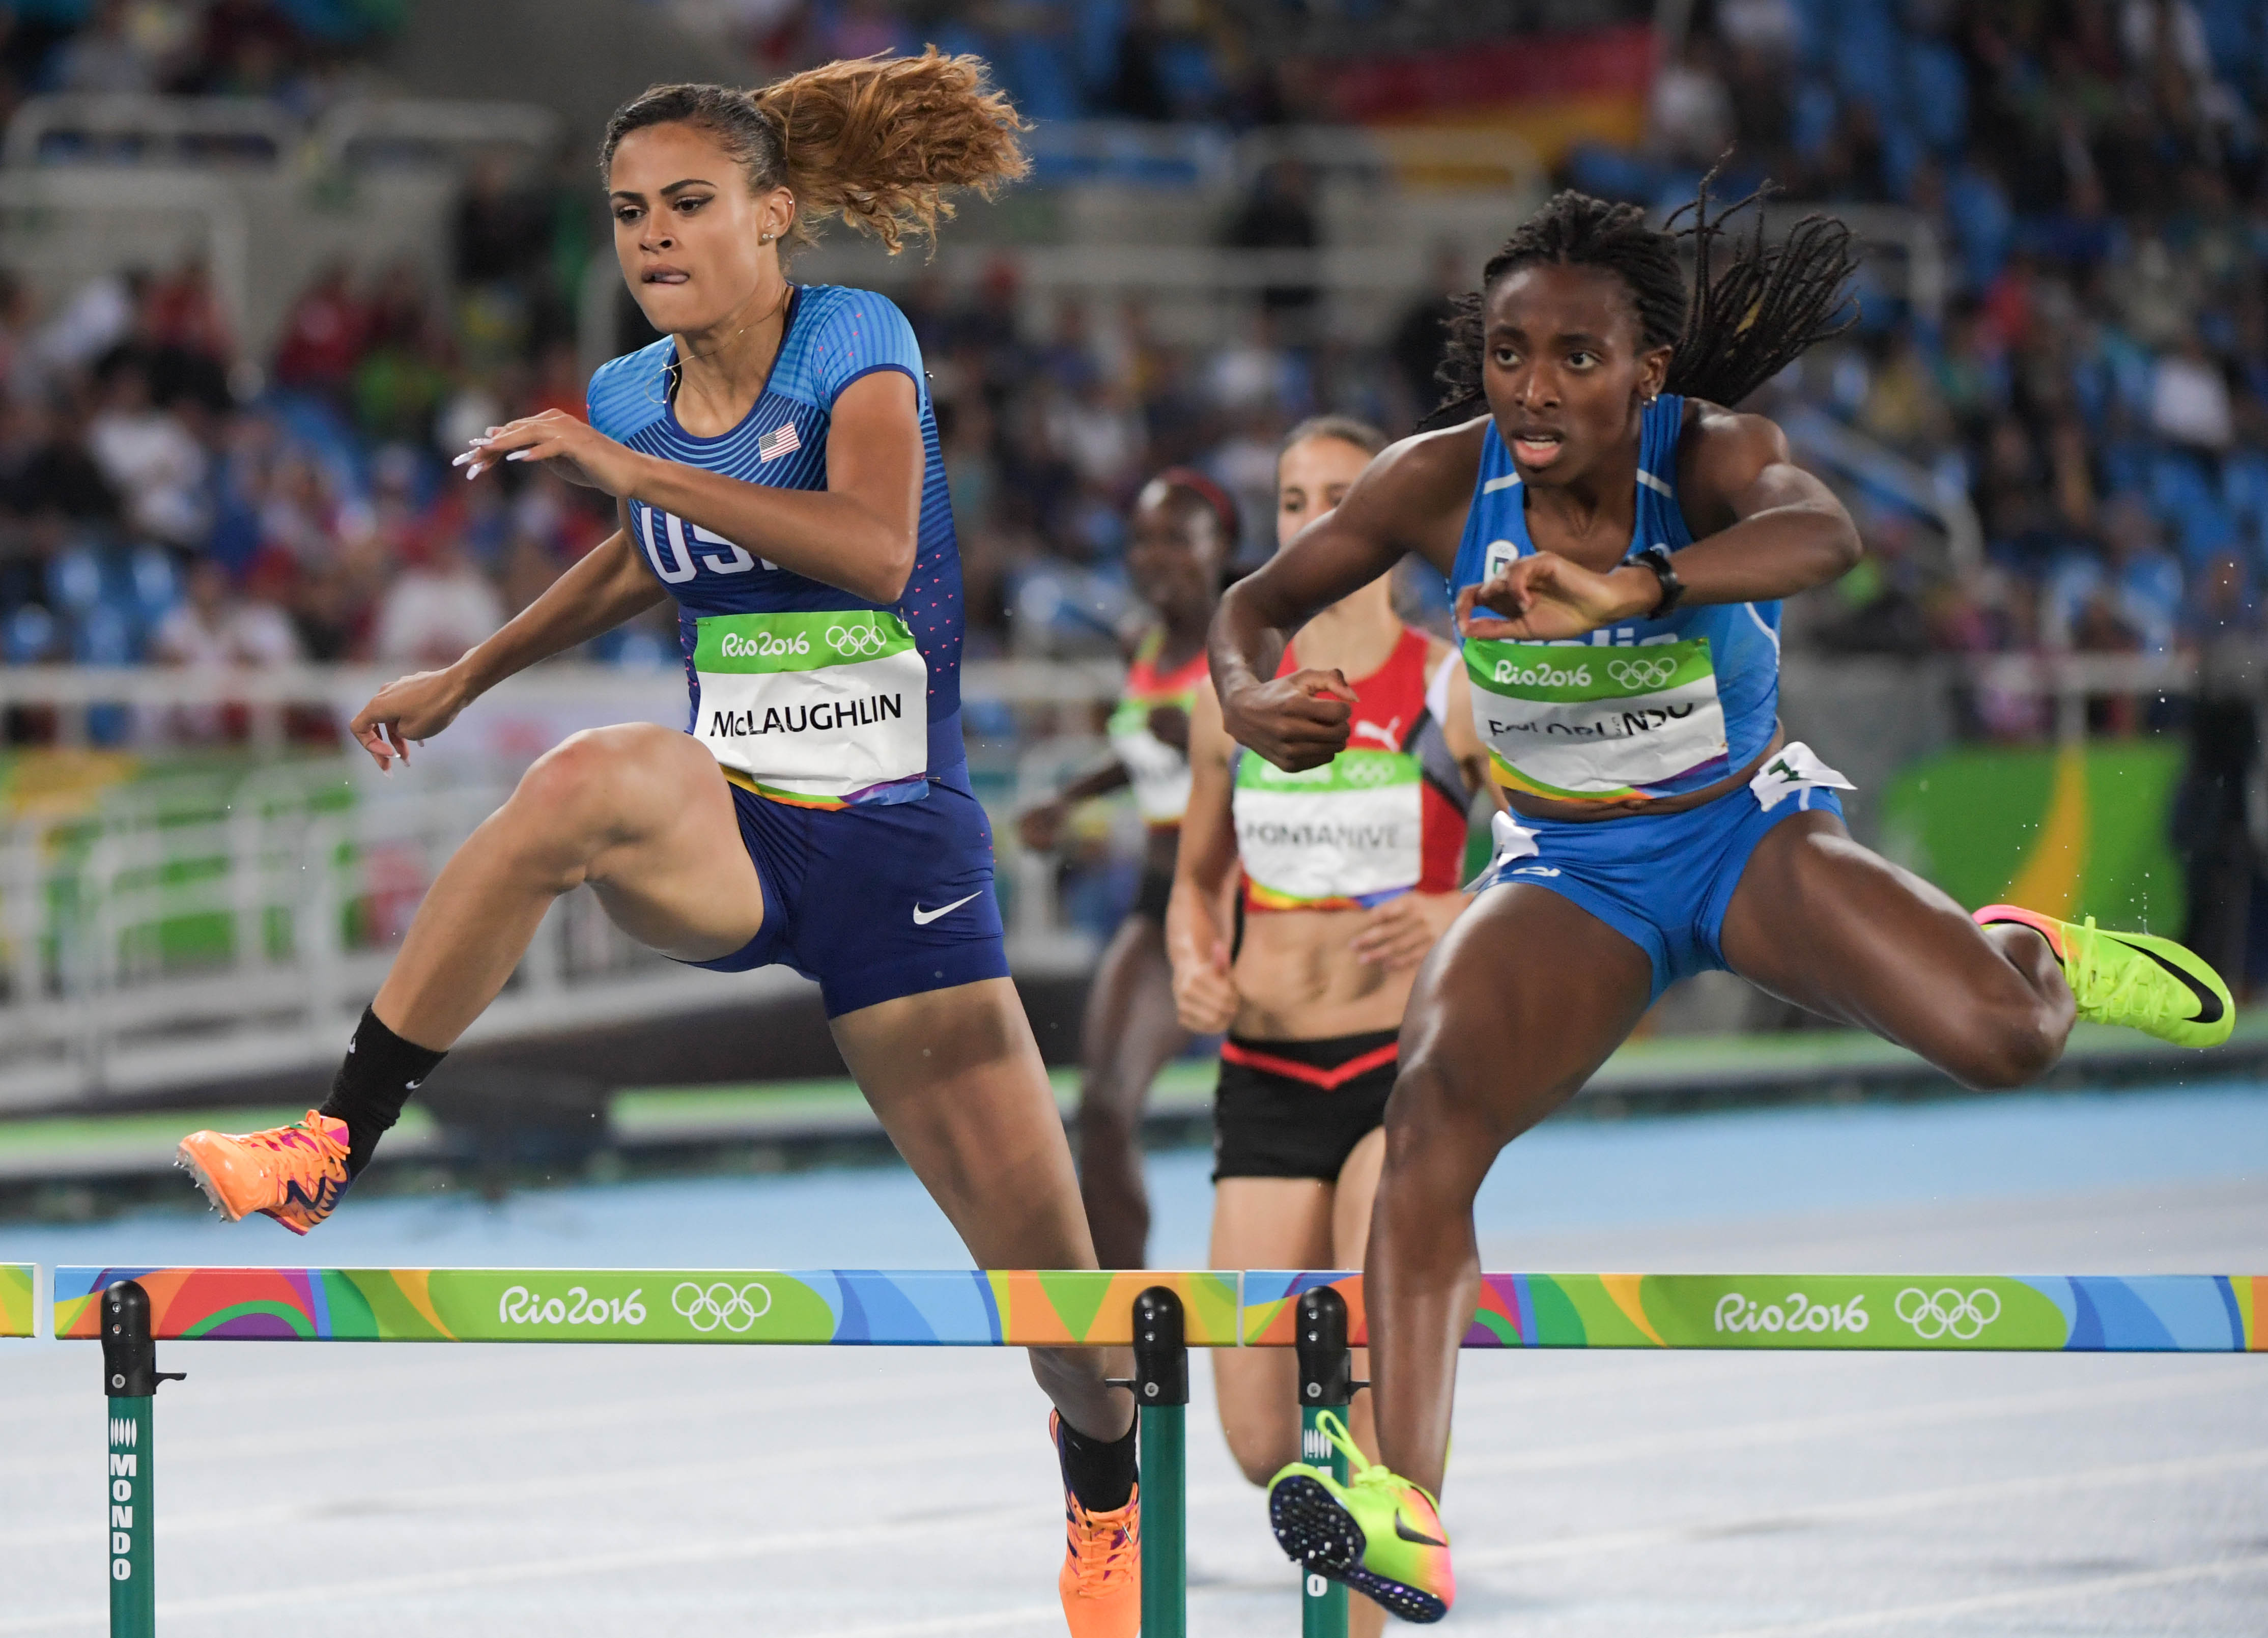 Aug 15, 2016; Rio de Janeiro, Brazil; Sydney McLaughlin (USA) competes in the women's 400m hurdles heat during track and field competition in the Rio 2016 Summer Olympic Games at Estadio Olimpico Joao Havelange. Mandatory Credit: Kirby Lee-USA TODAY Sports ORG XMIT: USATSI-GRP-882 ORIG FILE ID: 20160815_sal_al2_995.JPG